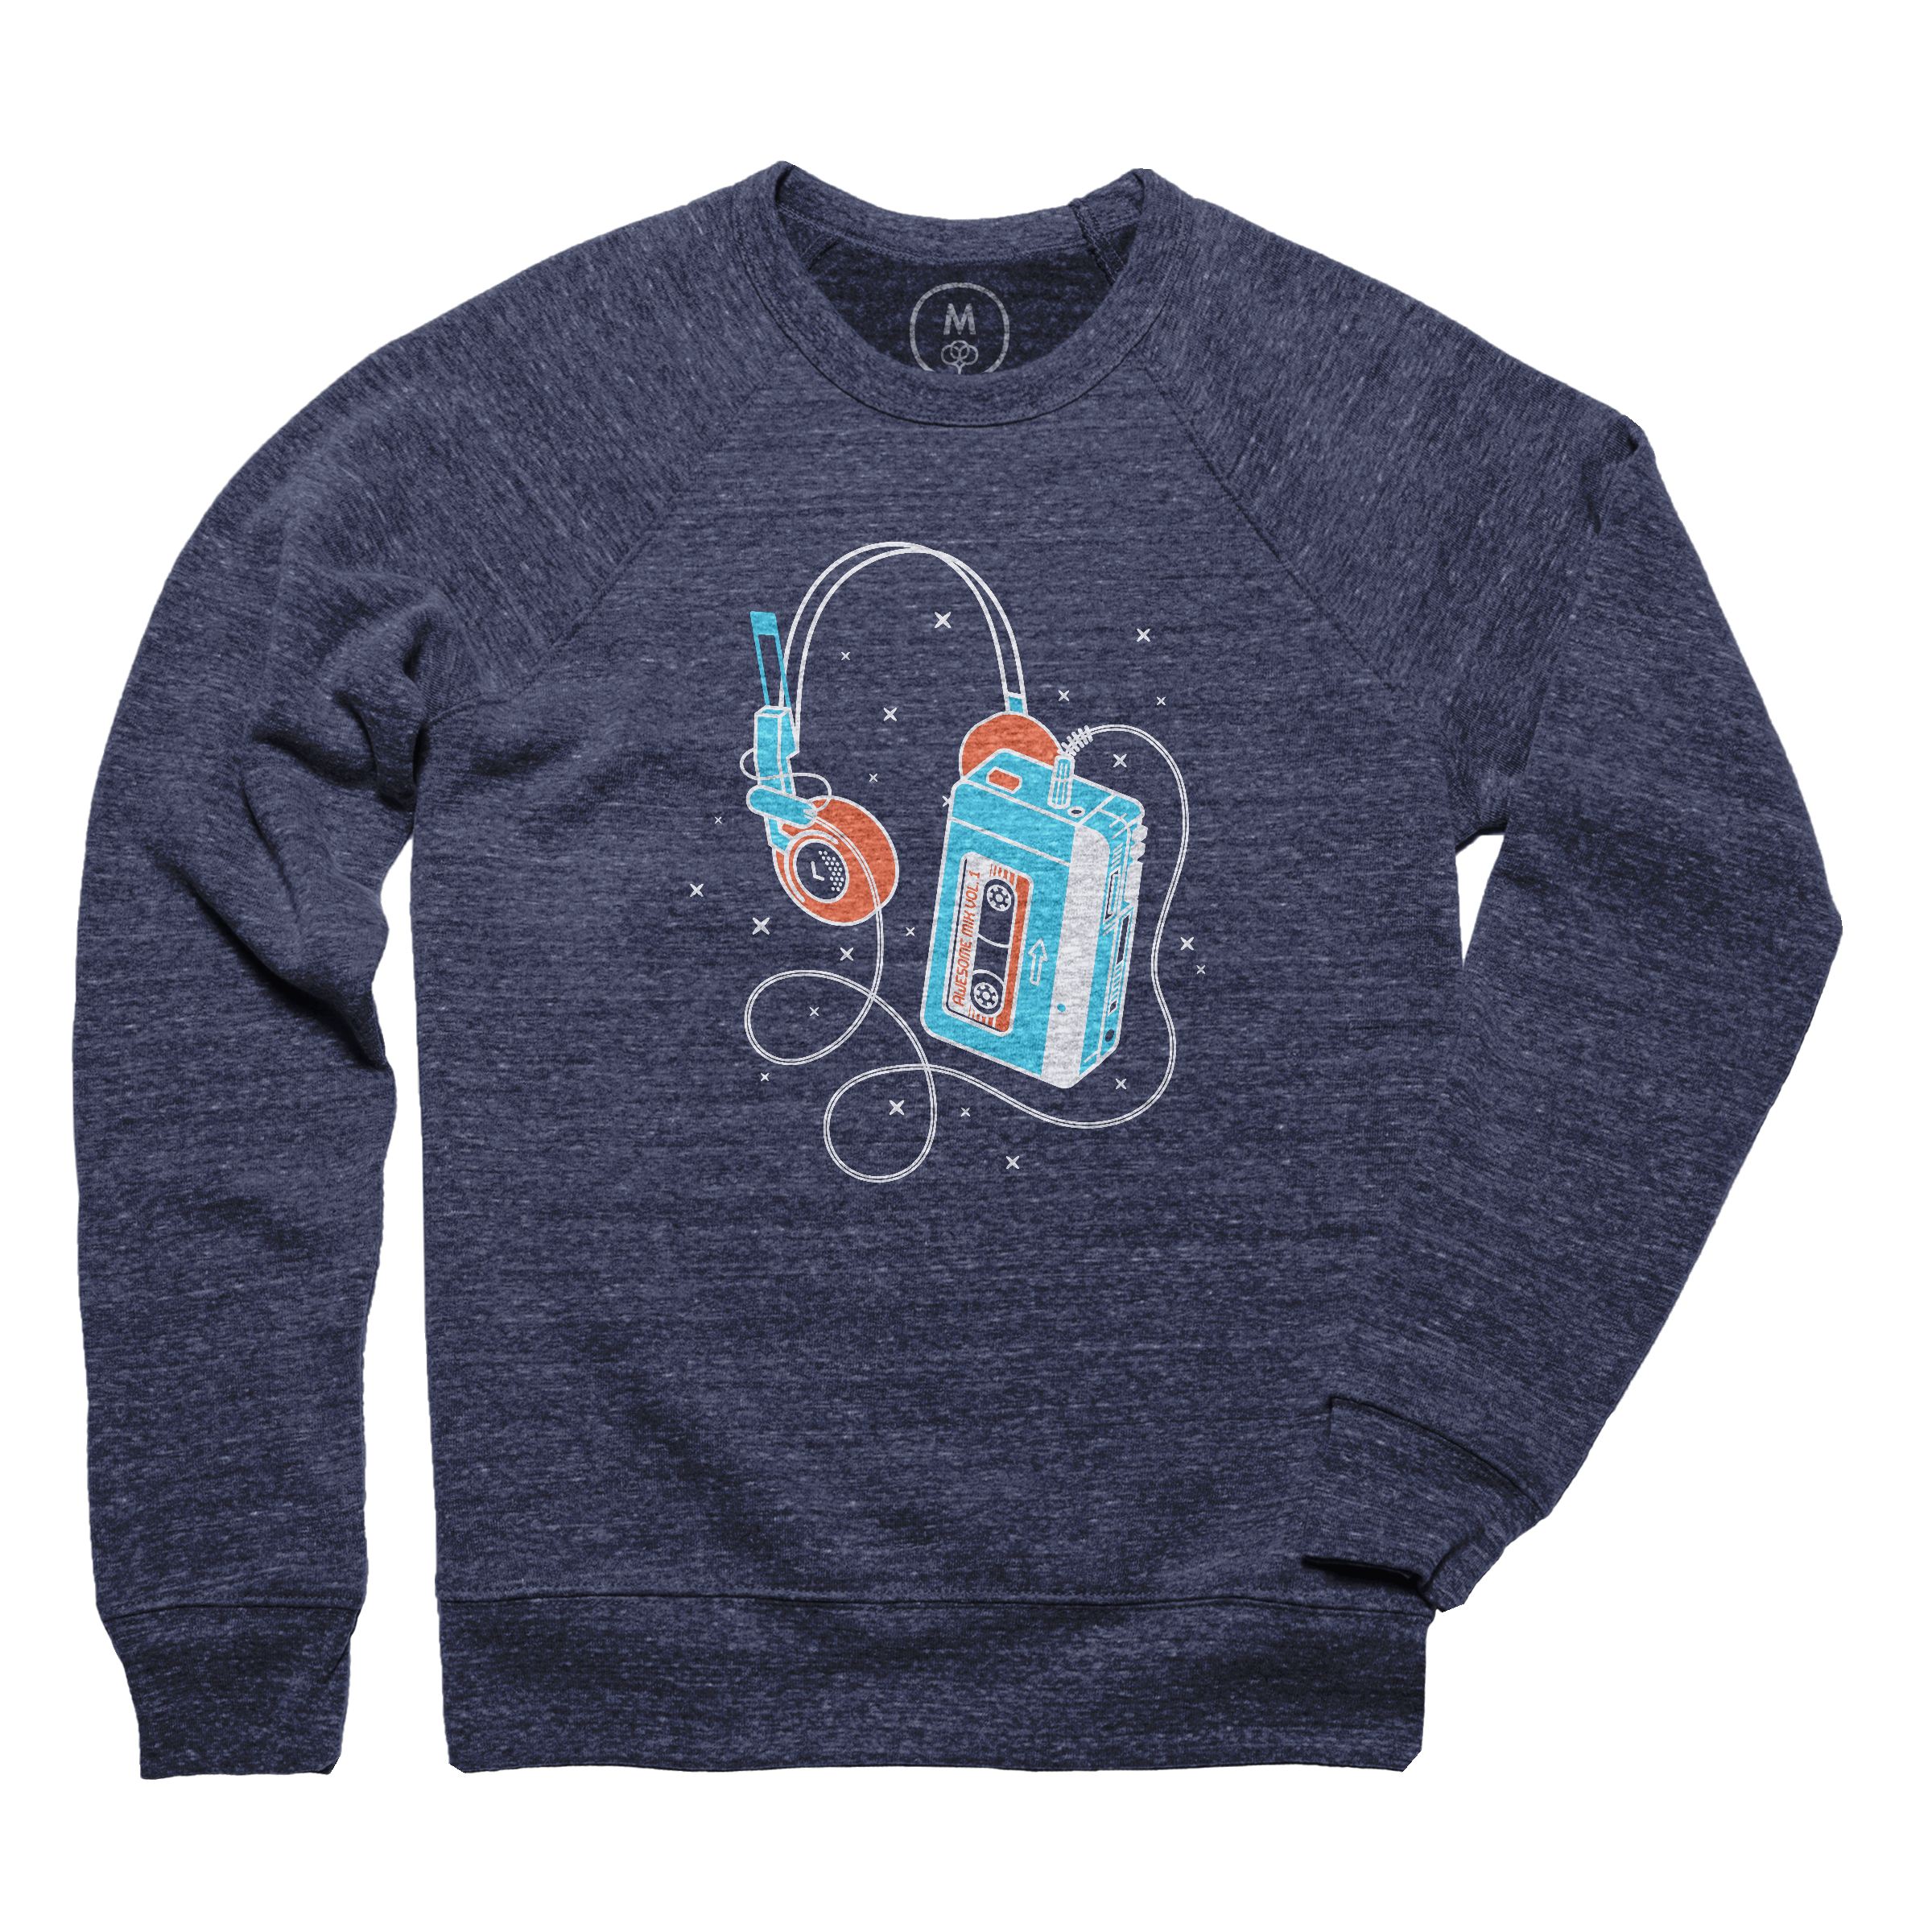 Awesome Mix Vol. 1 Pullover Crewneck